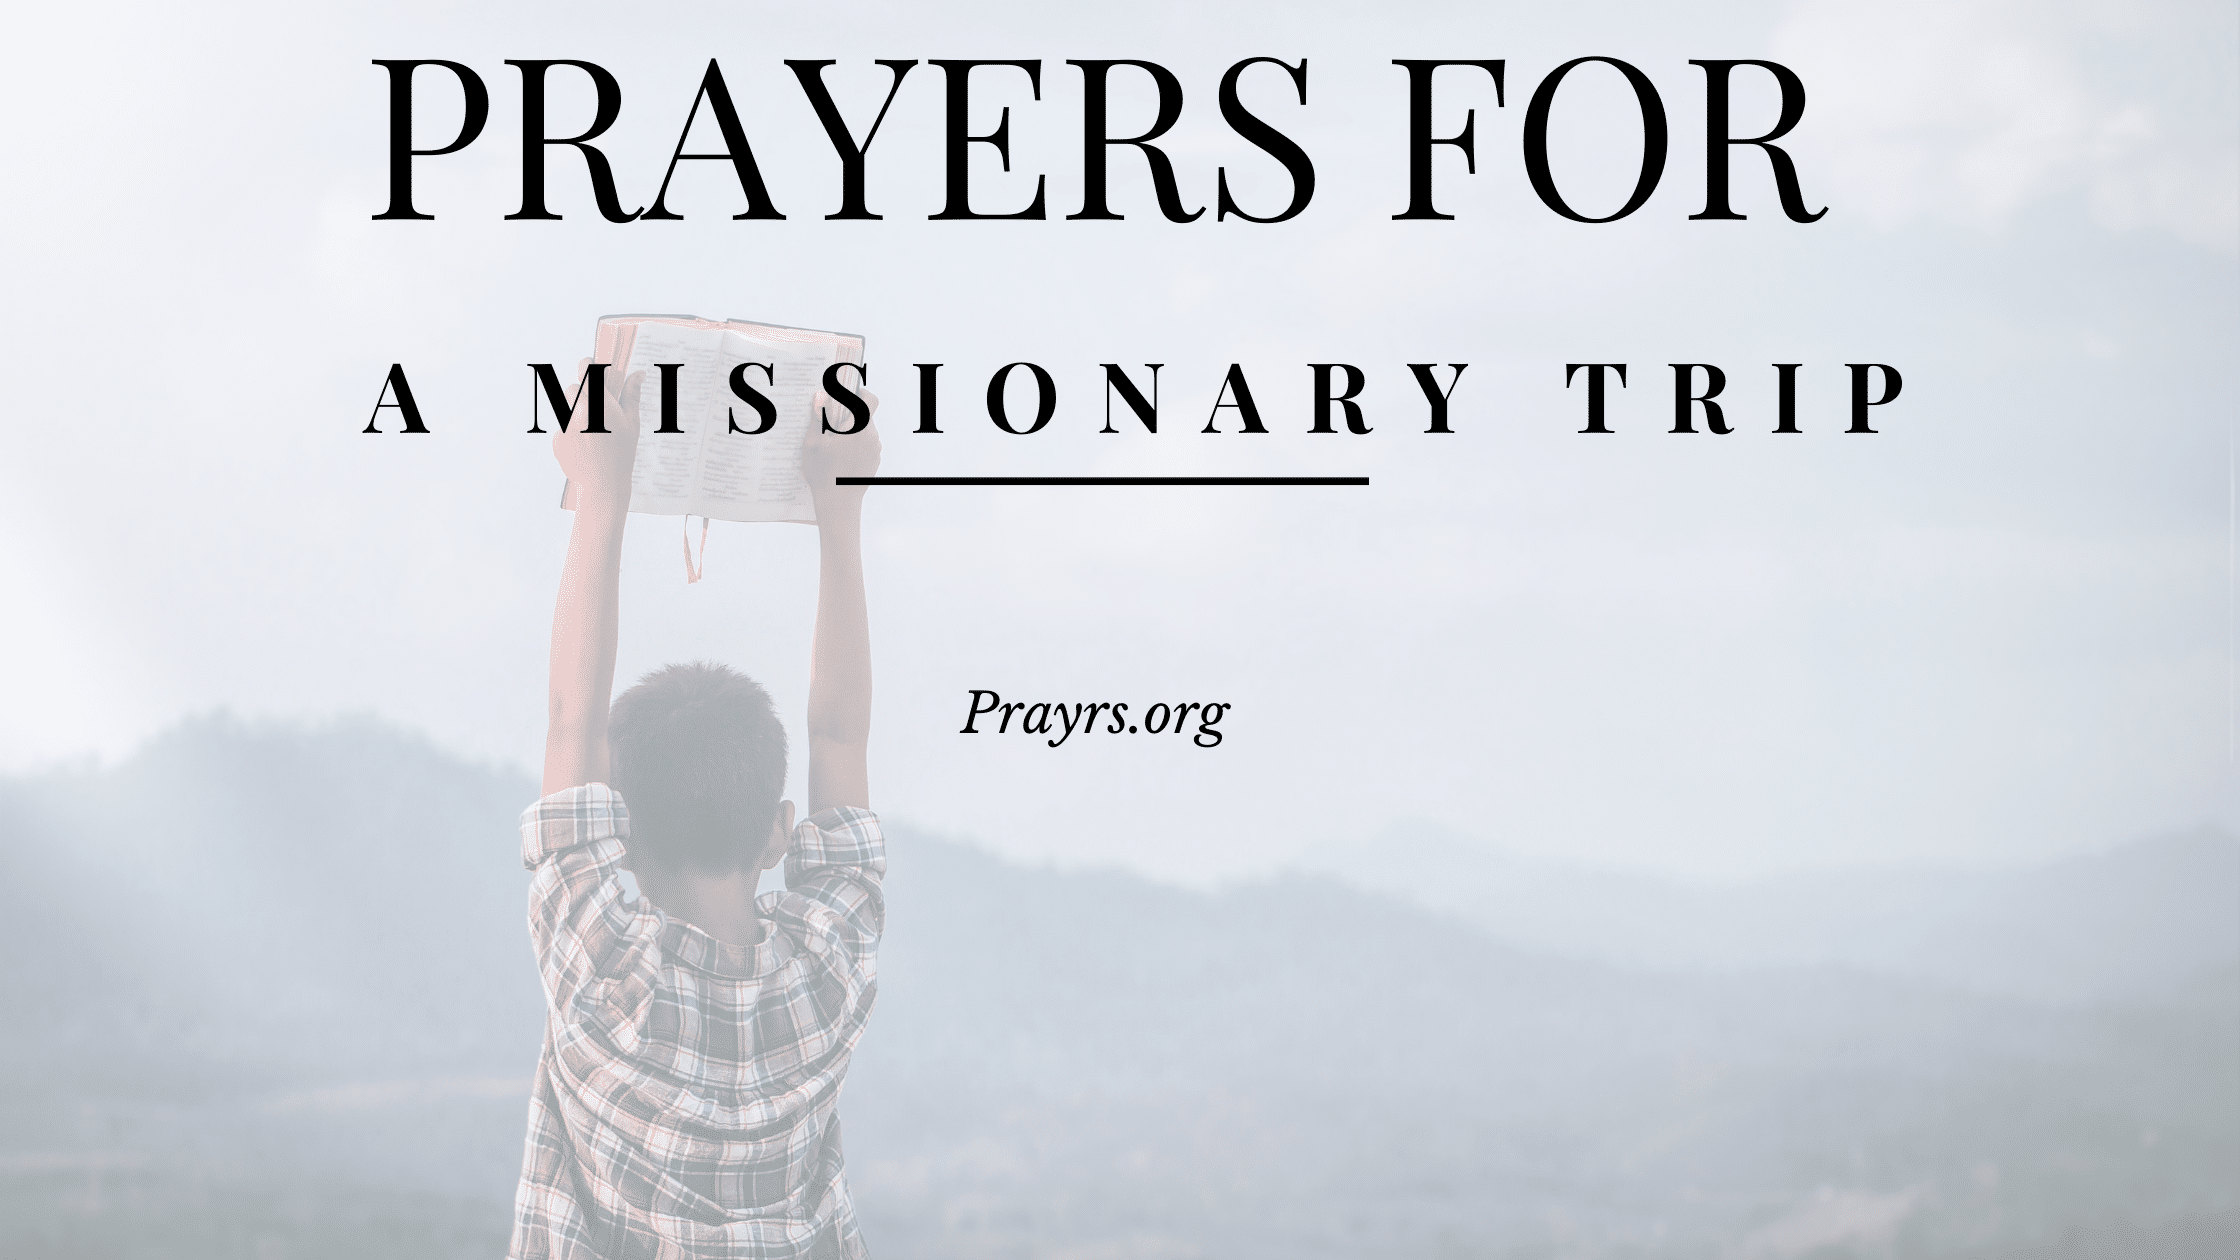 Prayers for a Missionary Trip